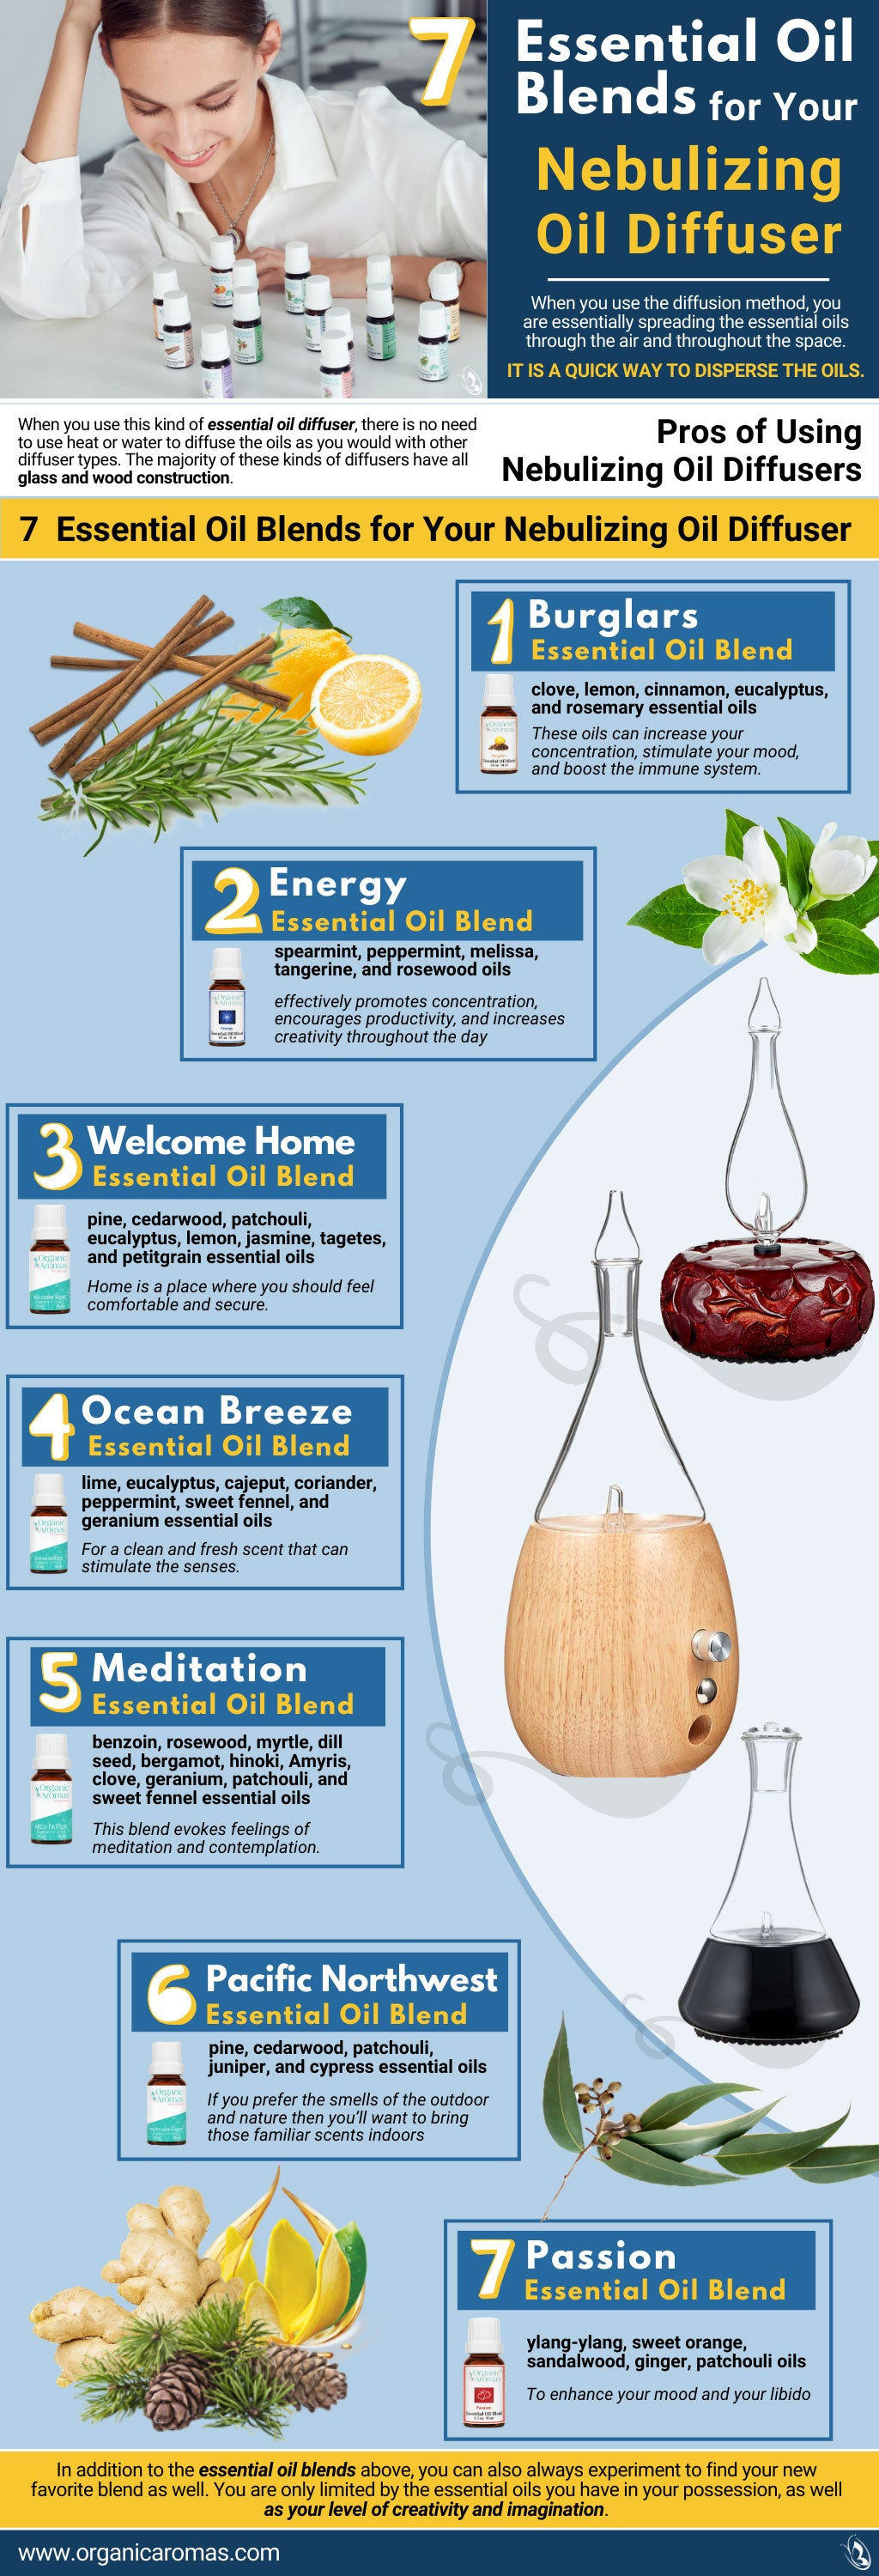 7 Essential Oil Blends For Your Nebulizing Oil Diffuser Organic Aromas